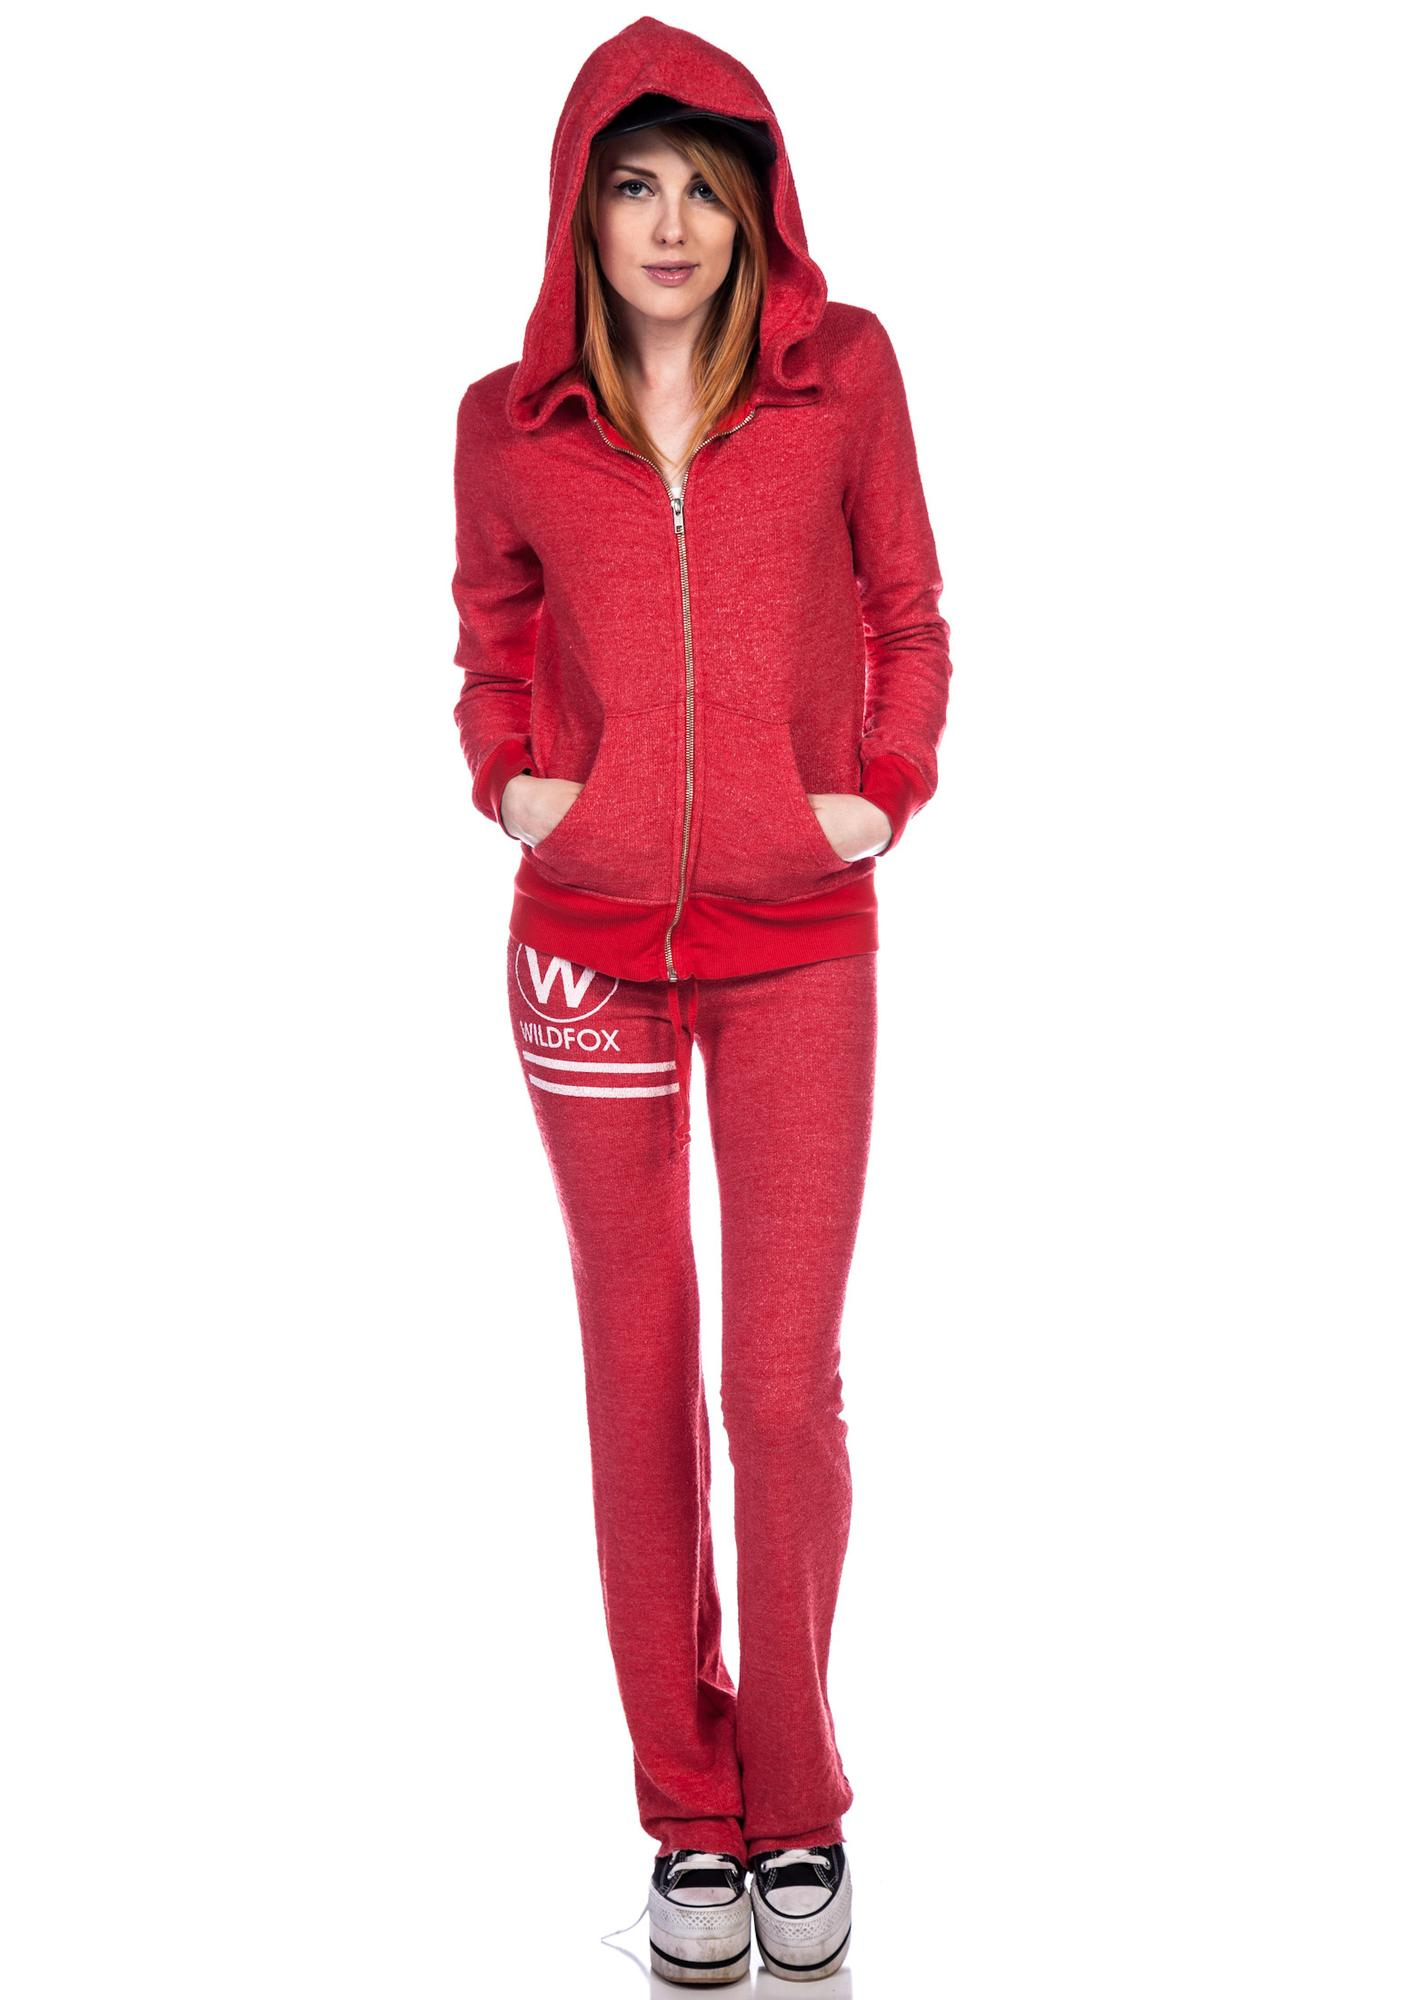 Wildfox Couture Wildfox Cruise Track Suit Jacket